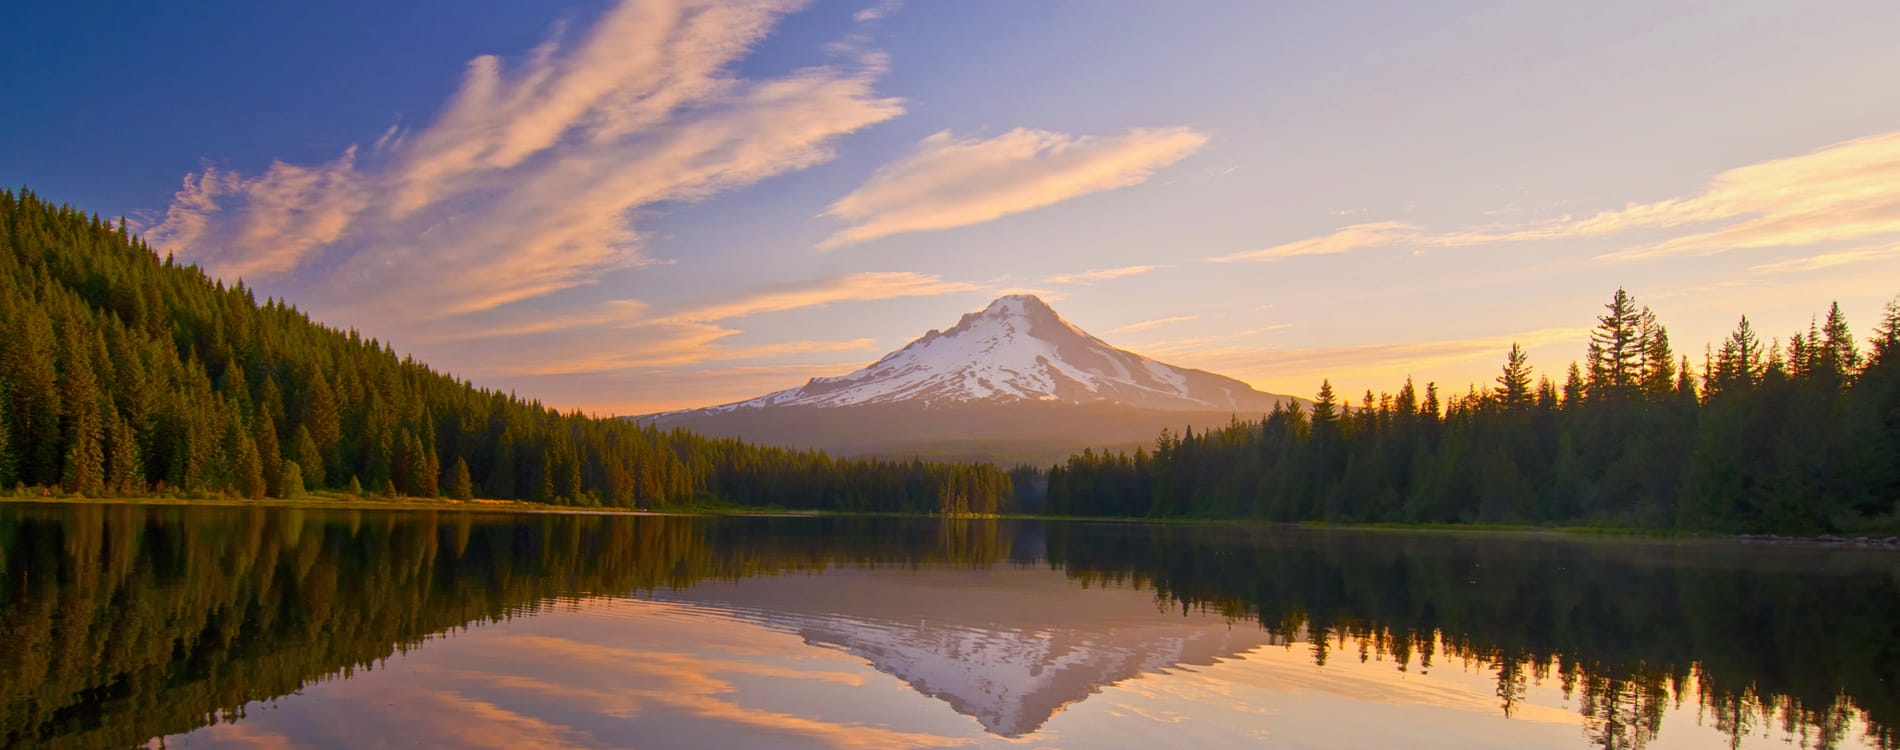 Mount Hood, OR - Sunset at Trillium Lake